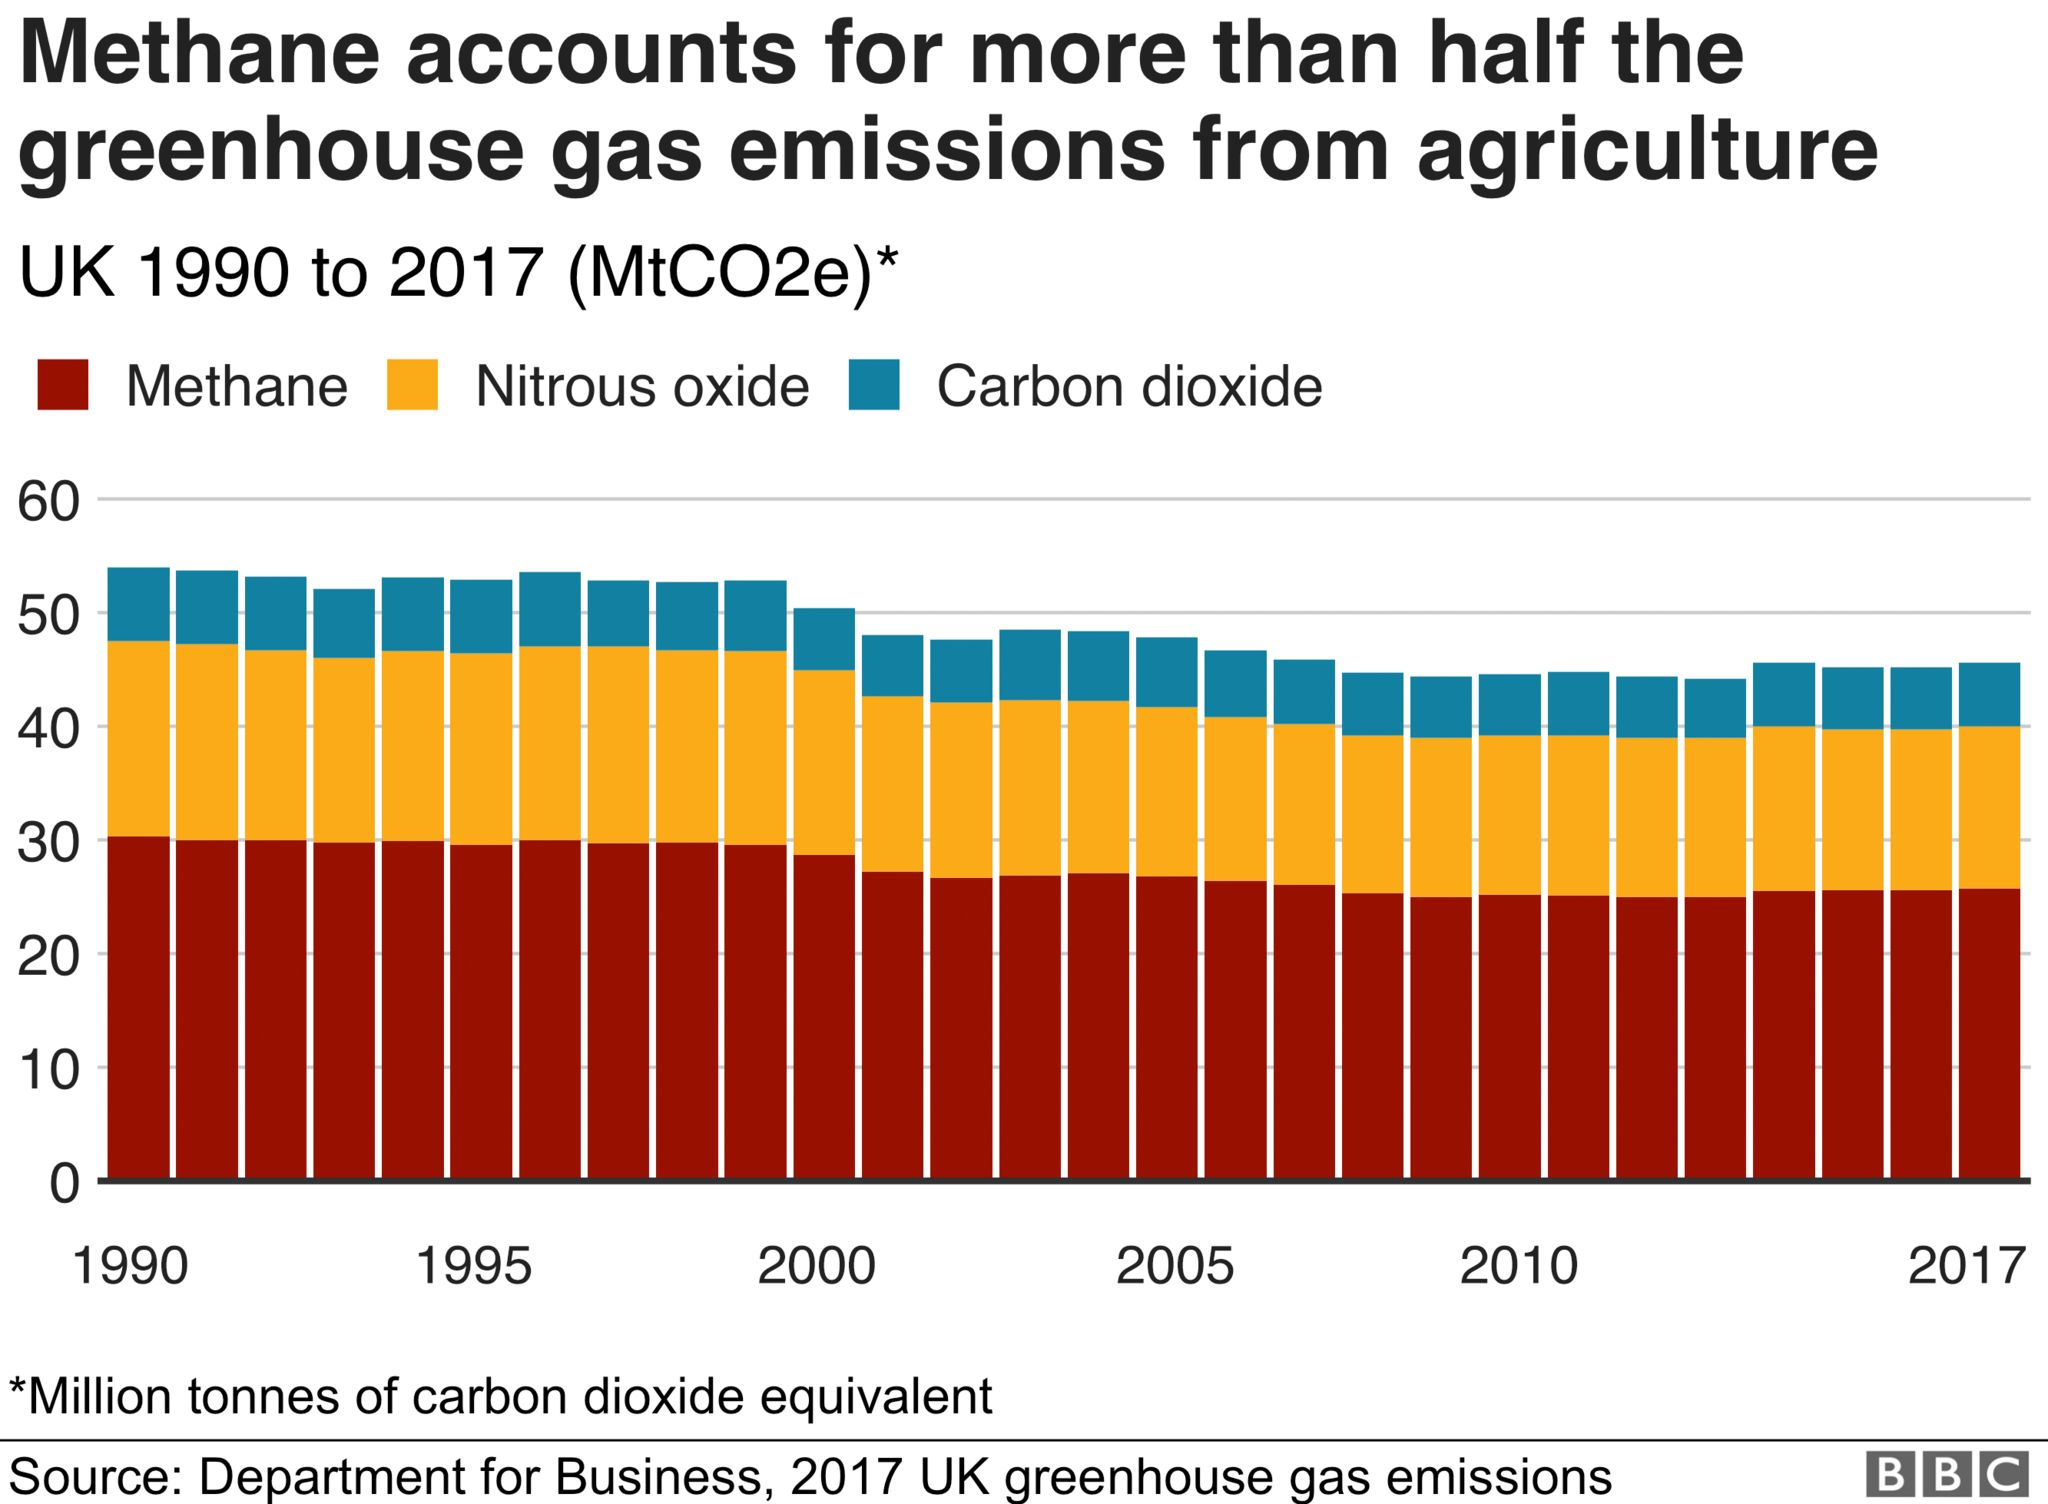 Chart showing that methane accounts for more than half the greenhouse gas emissions from UK farming.